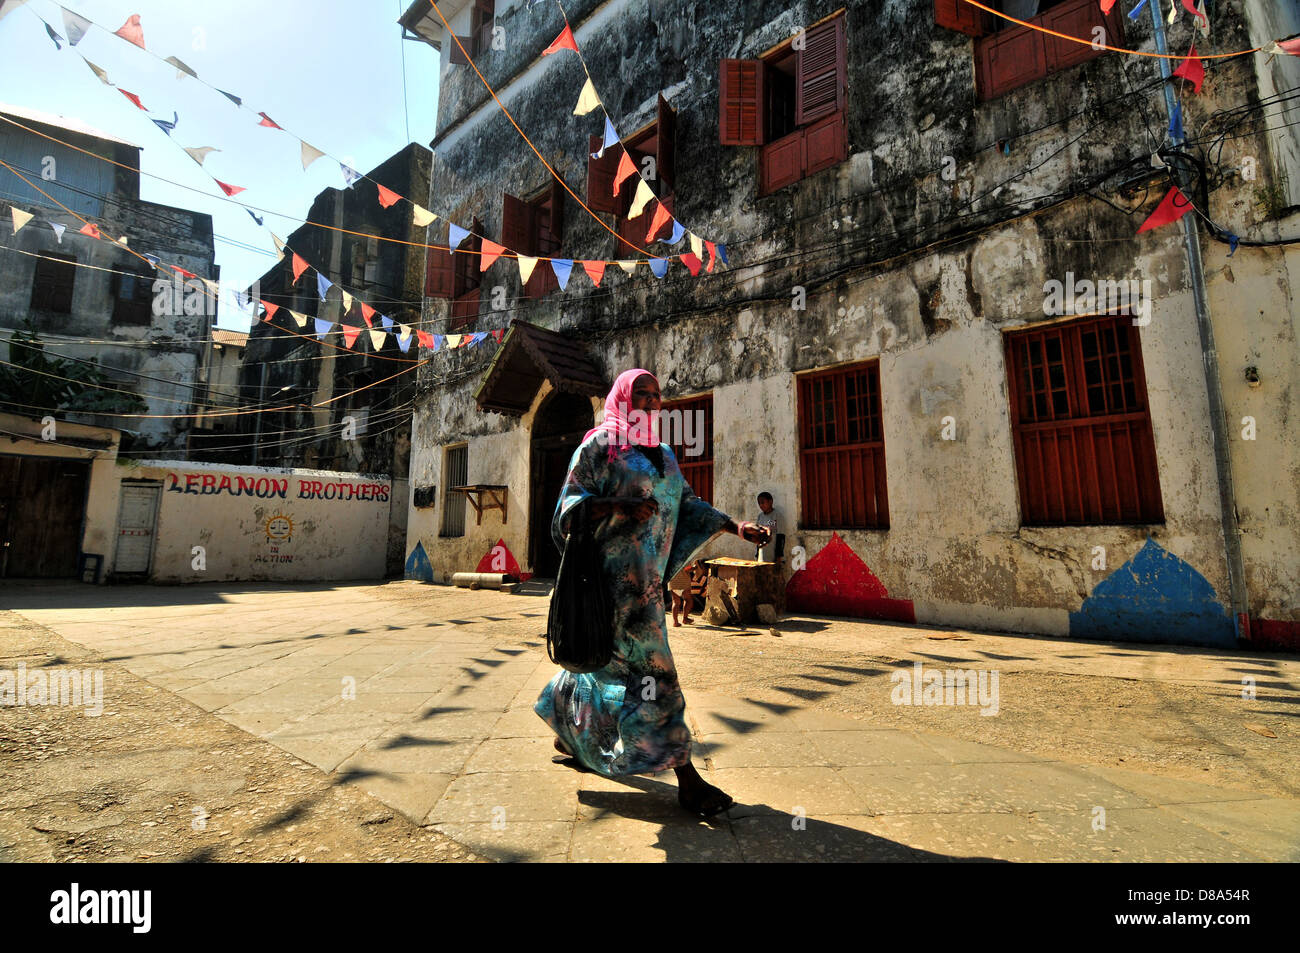 Muslim Young Woman Walking in the flags decorated streets of Stonecity, Zanzibar - Stock Image